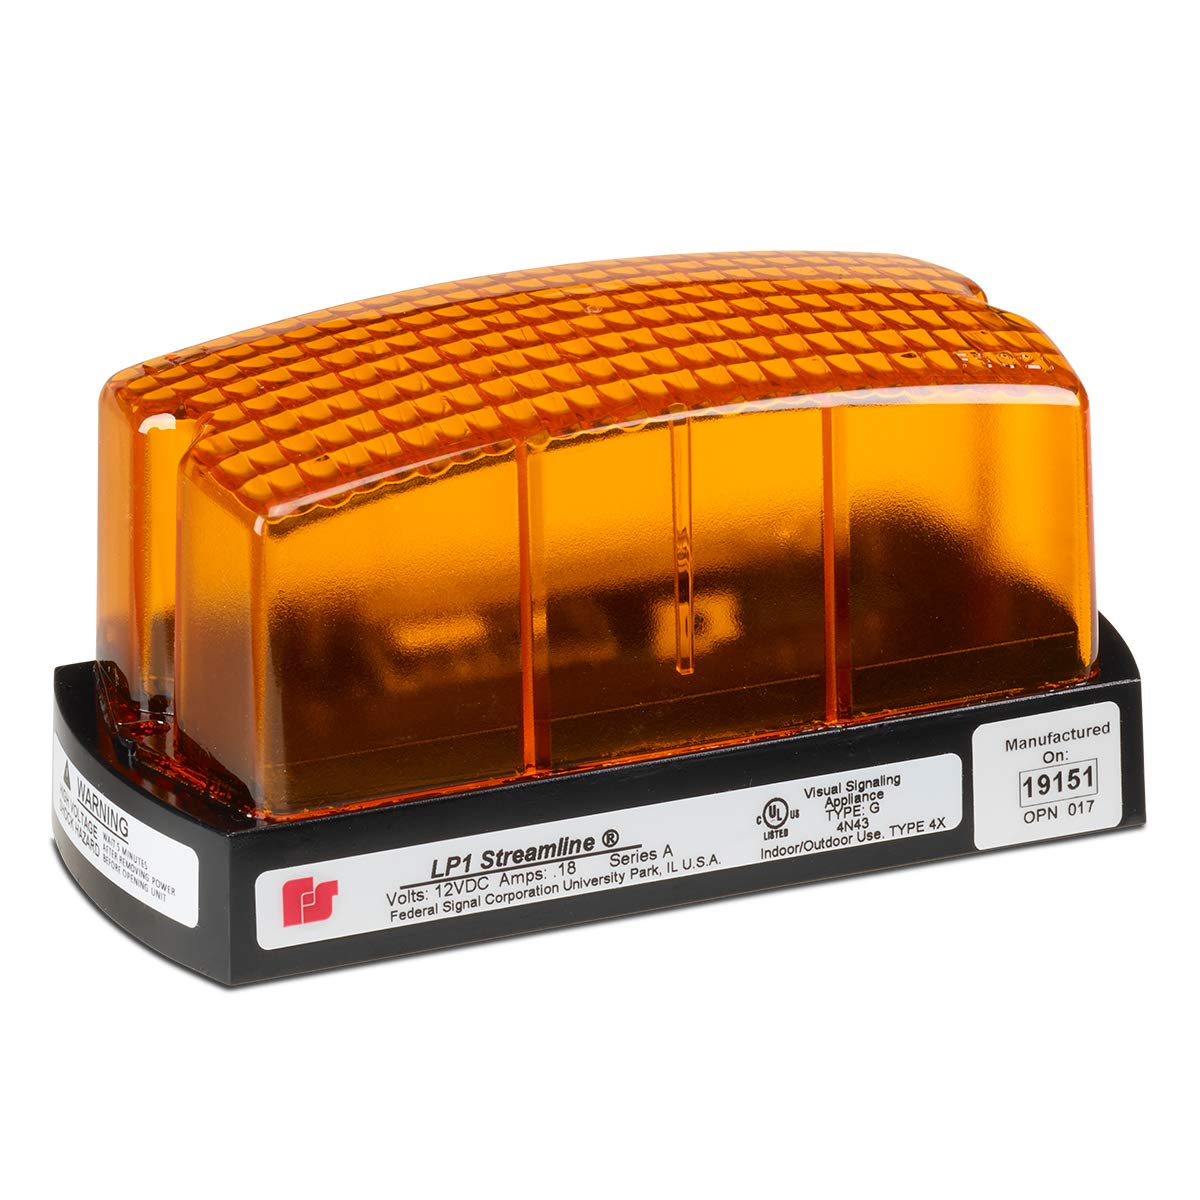 Federal Signal LP1-024A Streamline Low Mini Strobe National products Light Profile Chicago Mall